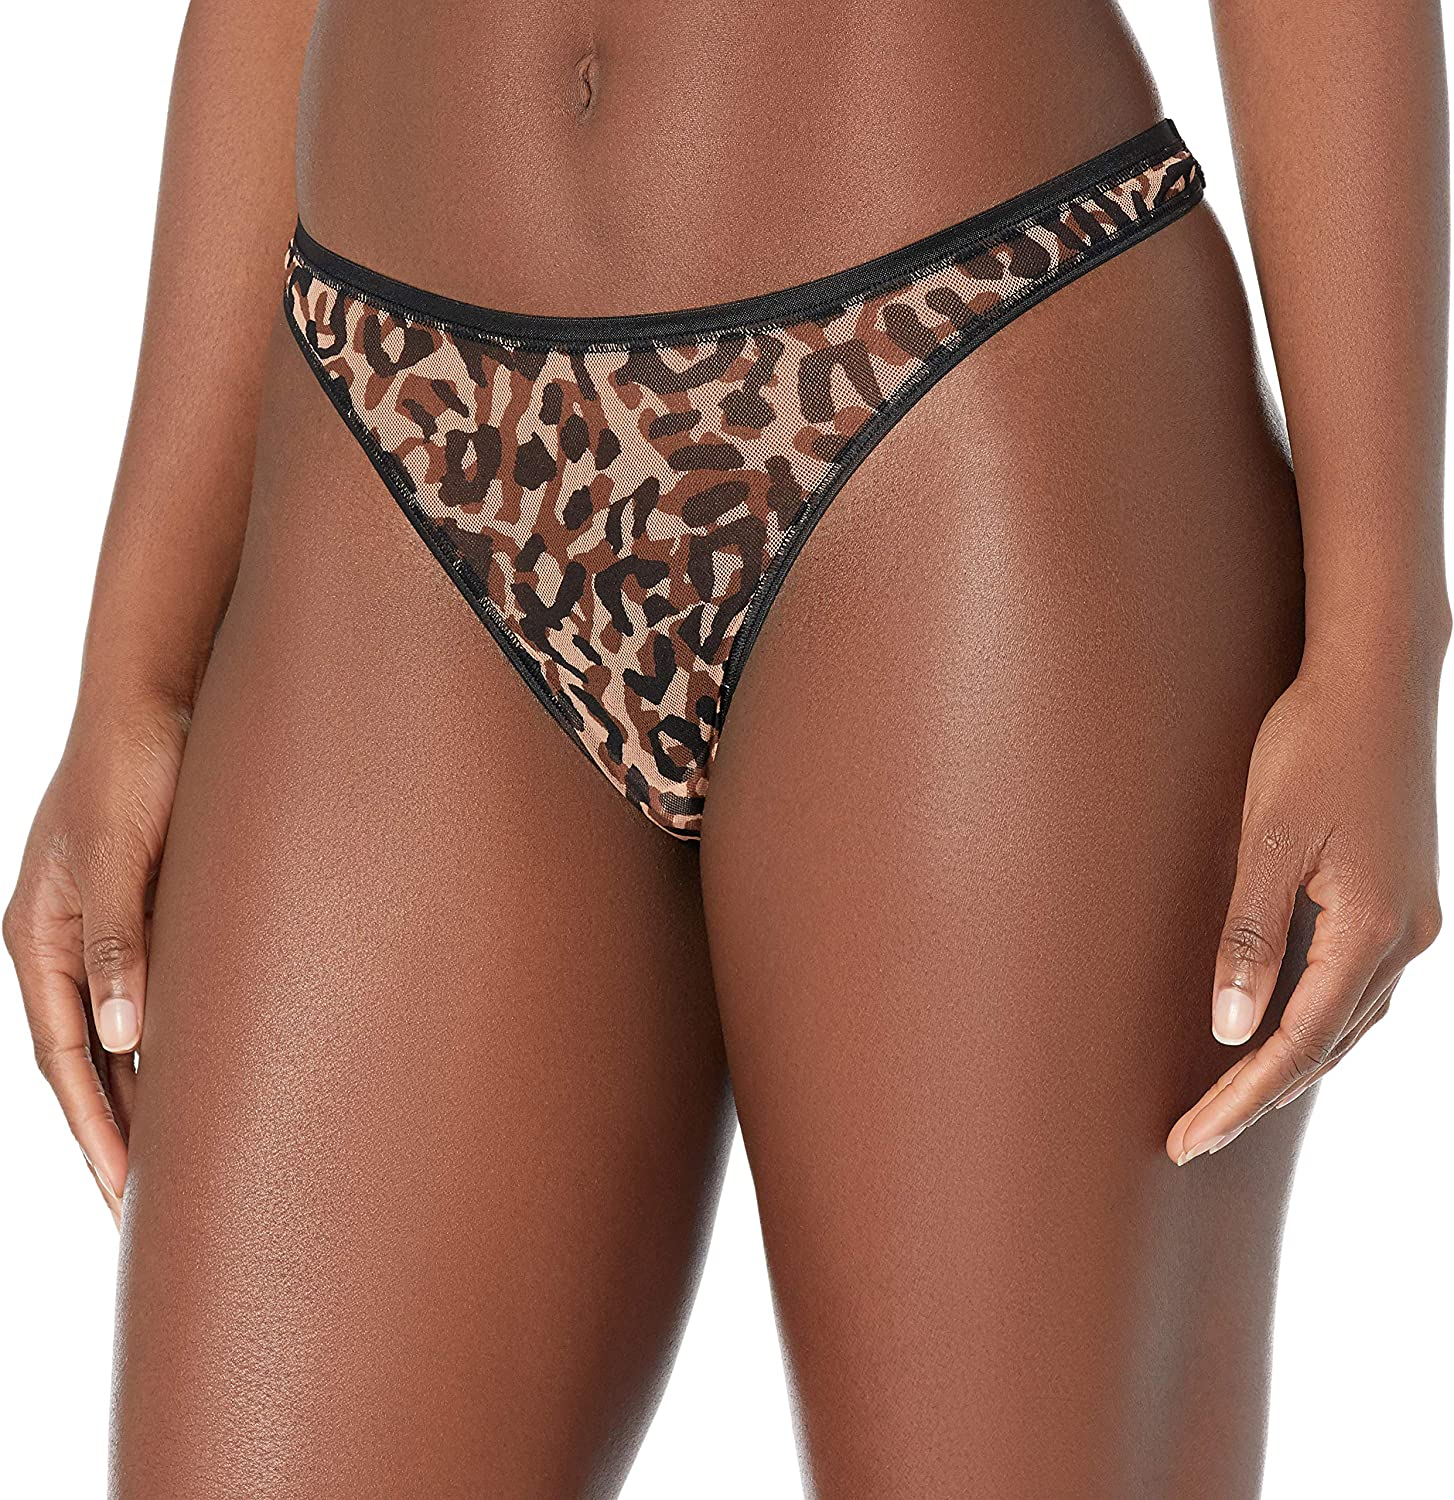 Cosabella Women's Soire Confidence Printed Classic Thong